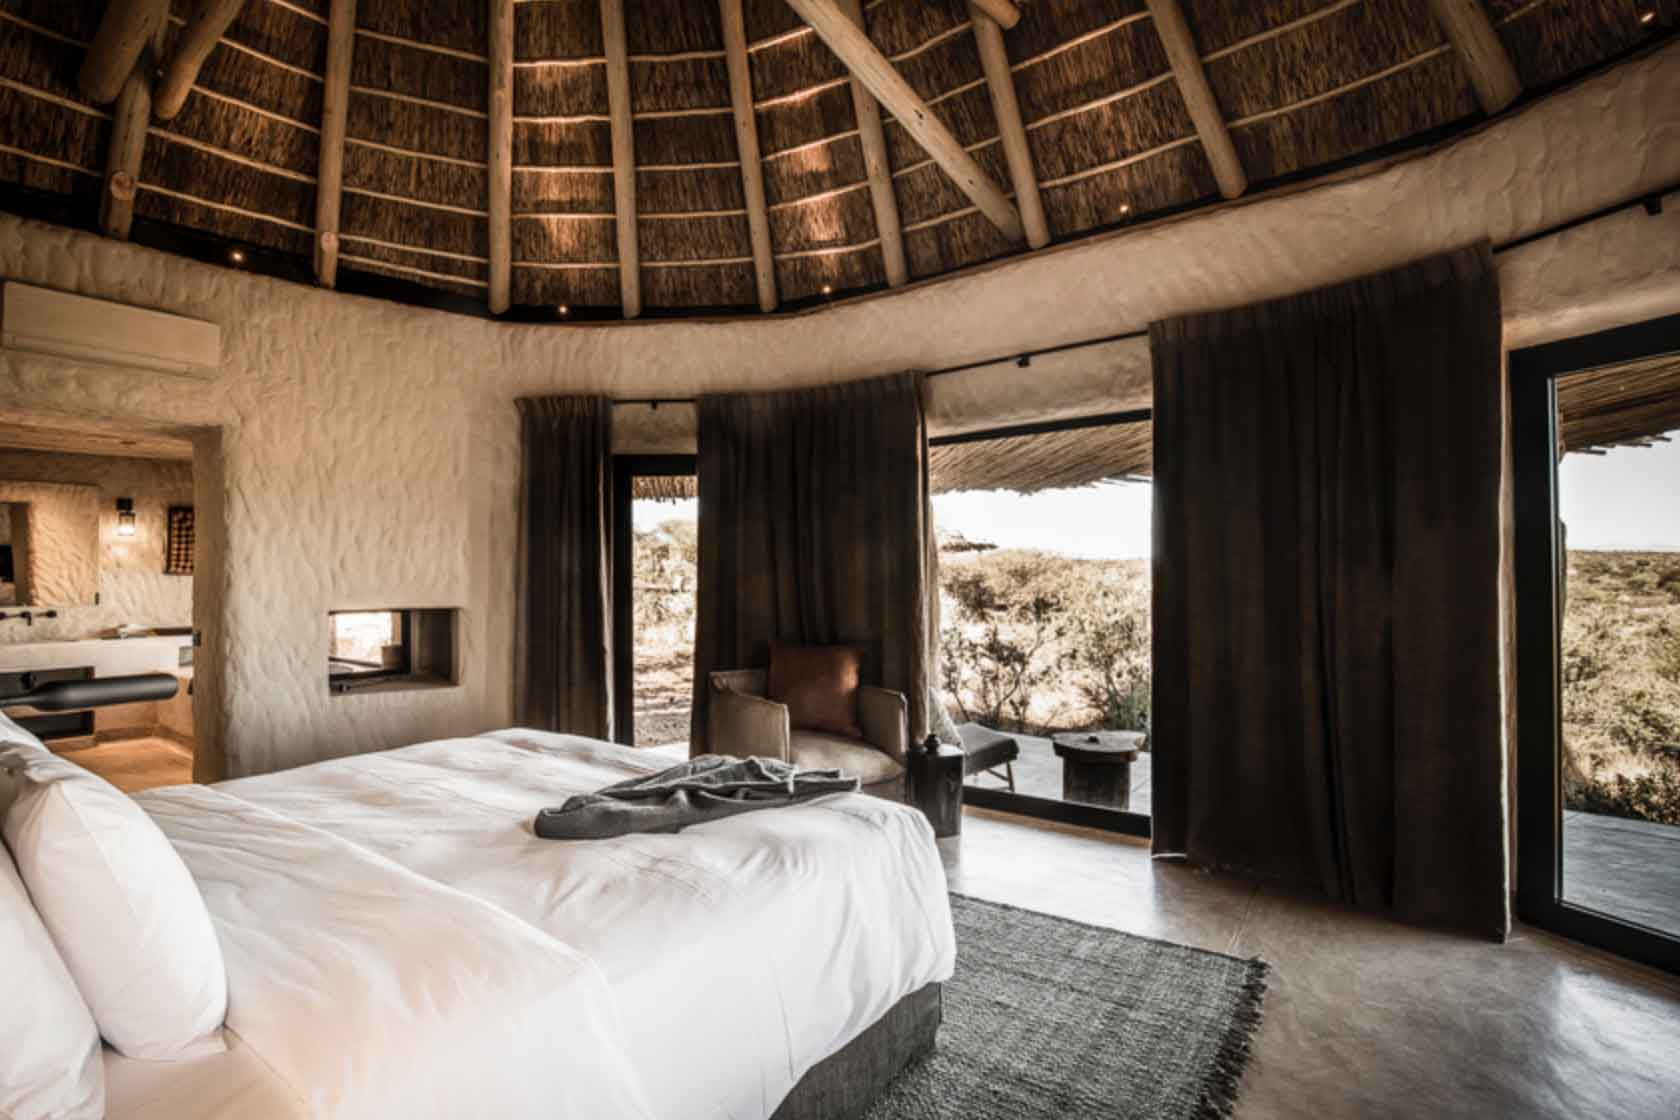 50-top-hotels-retreats-omaanda-lodge-namibia-decohome.de_